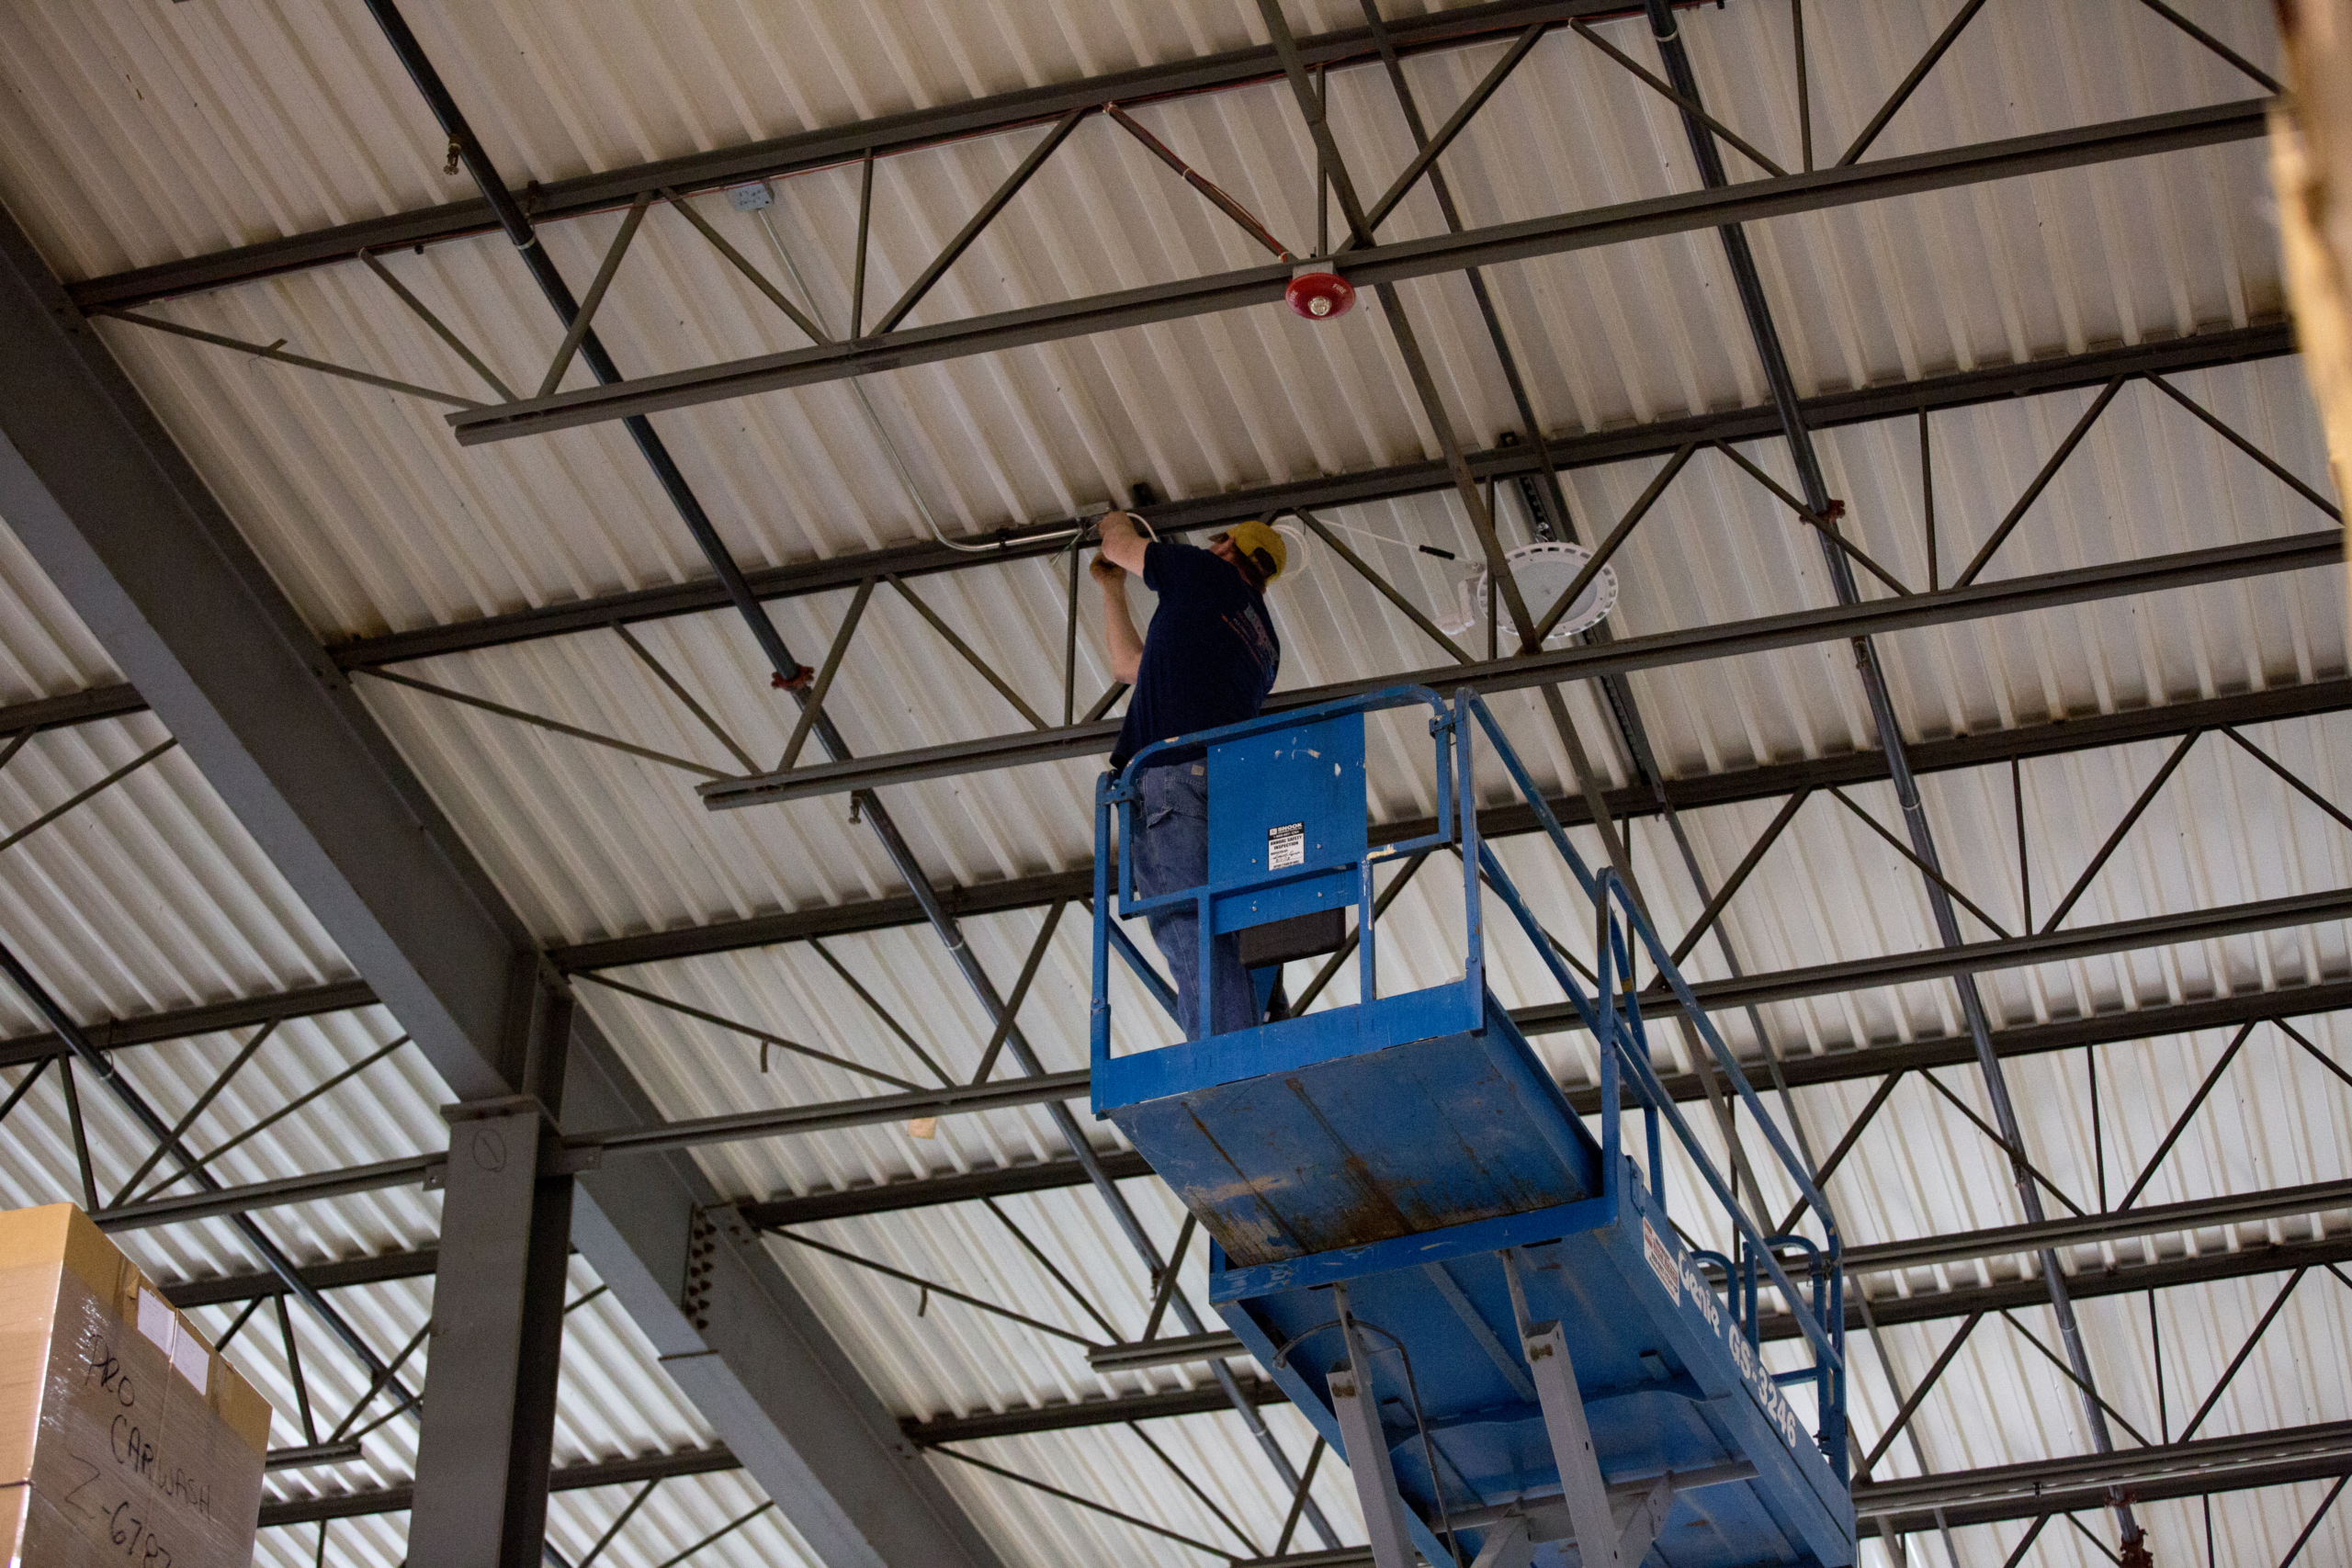 LED Emergency battery backup being installed in a warehouse by a man